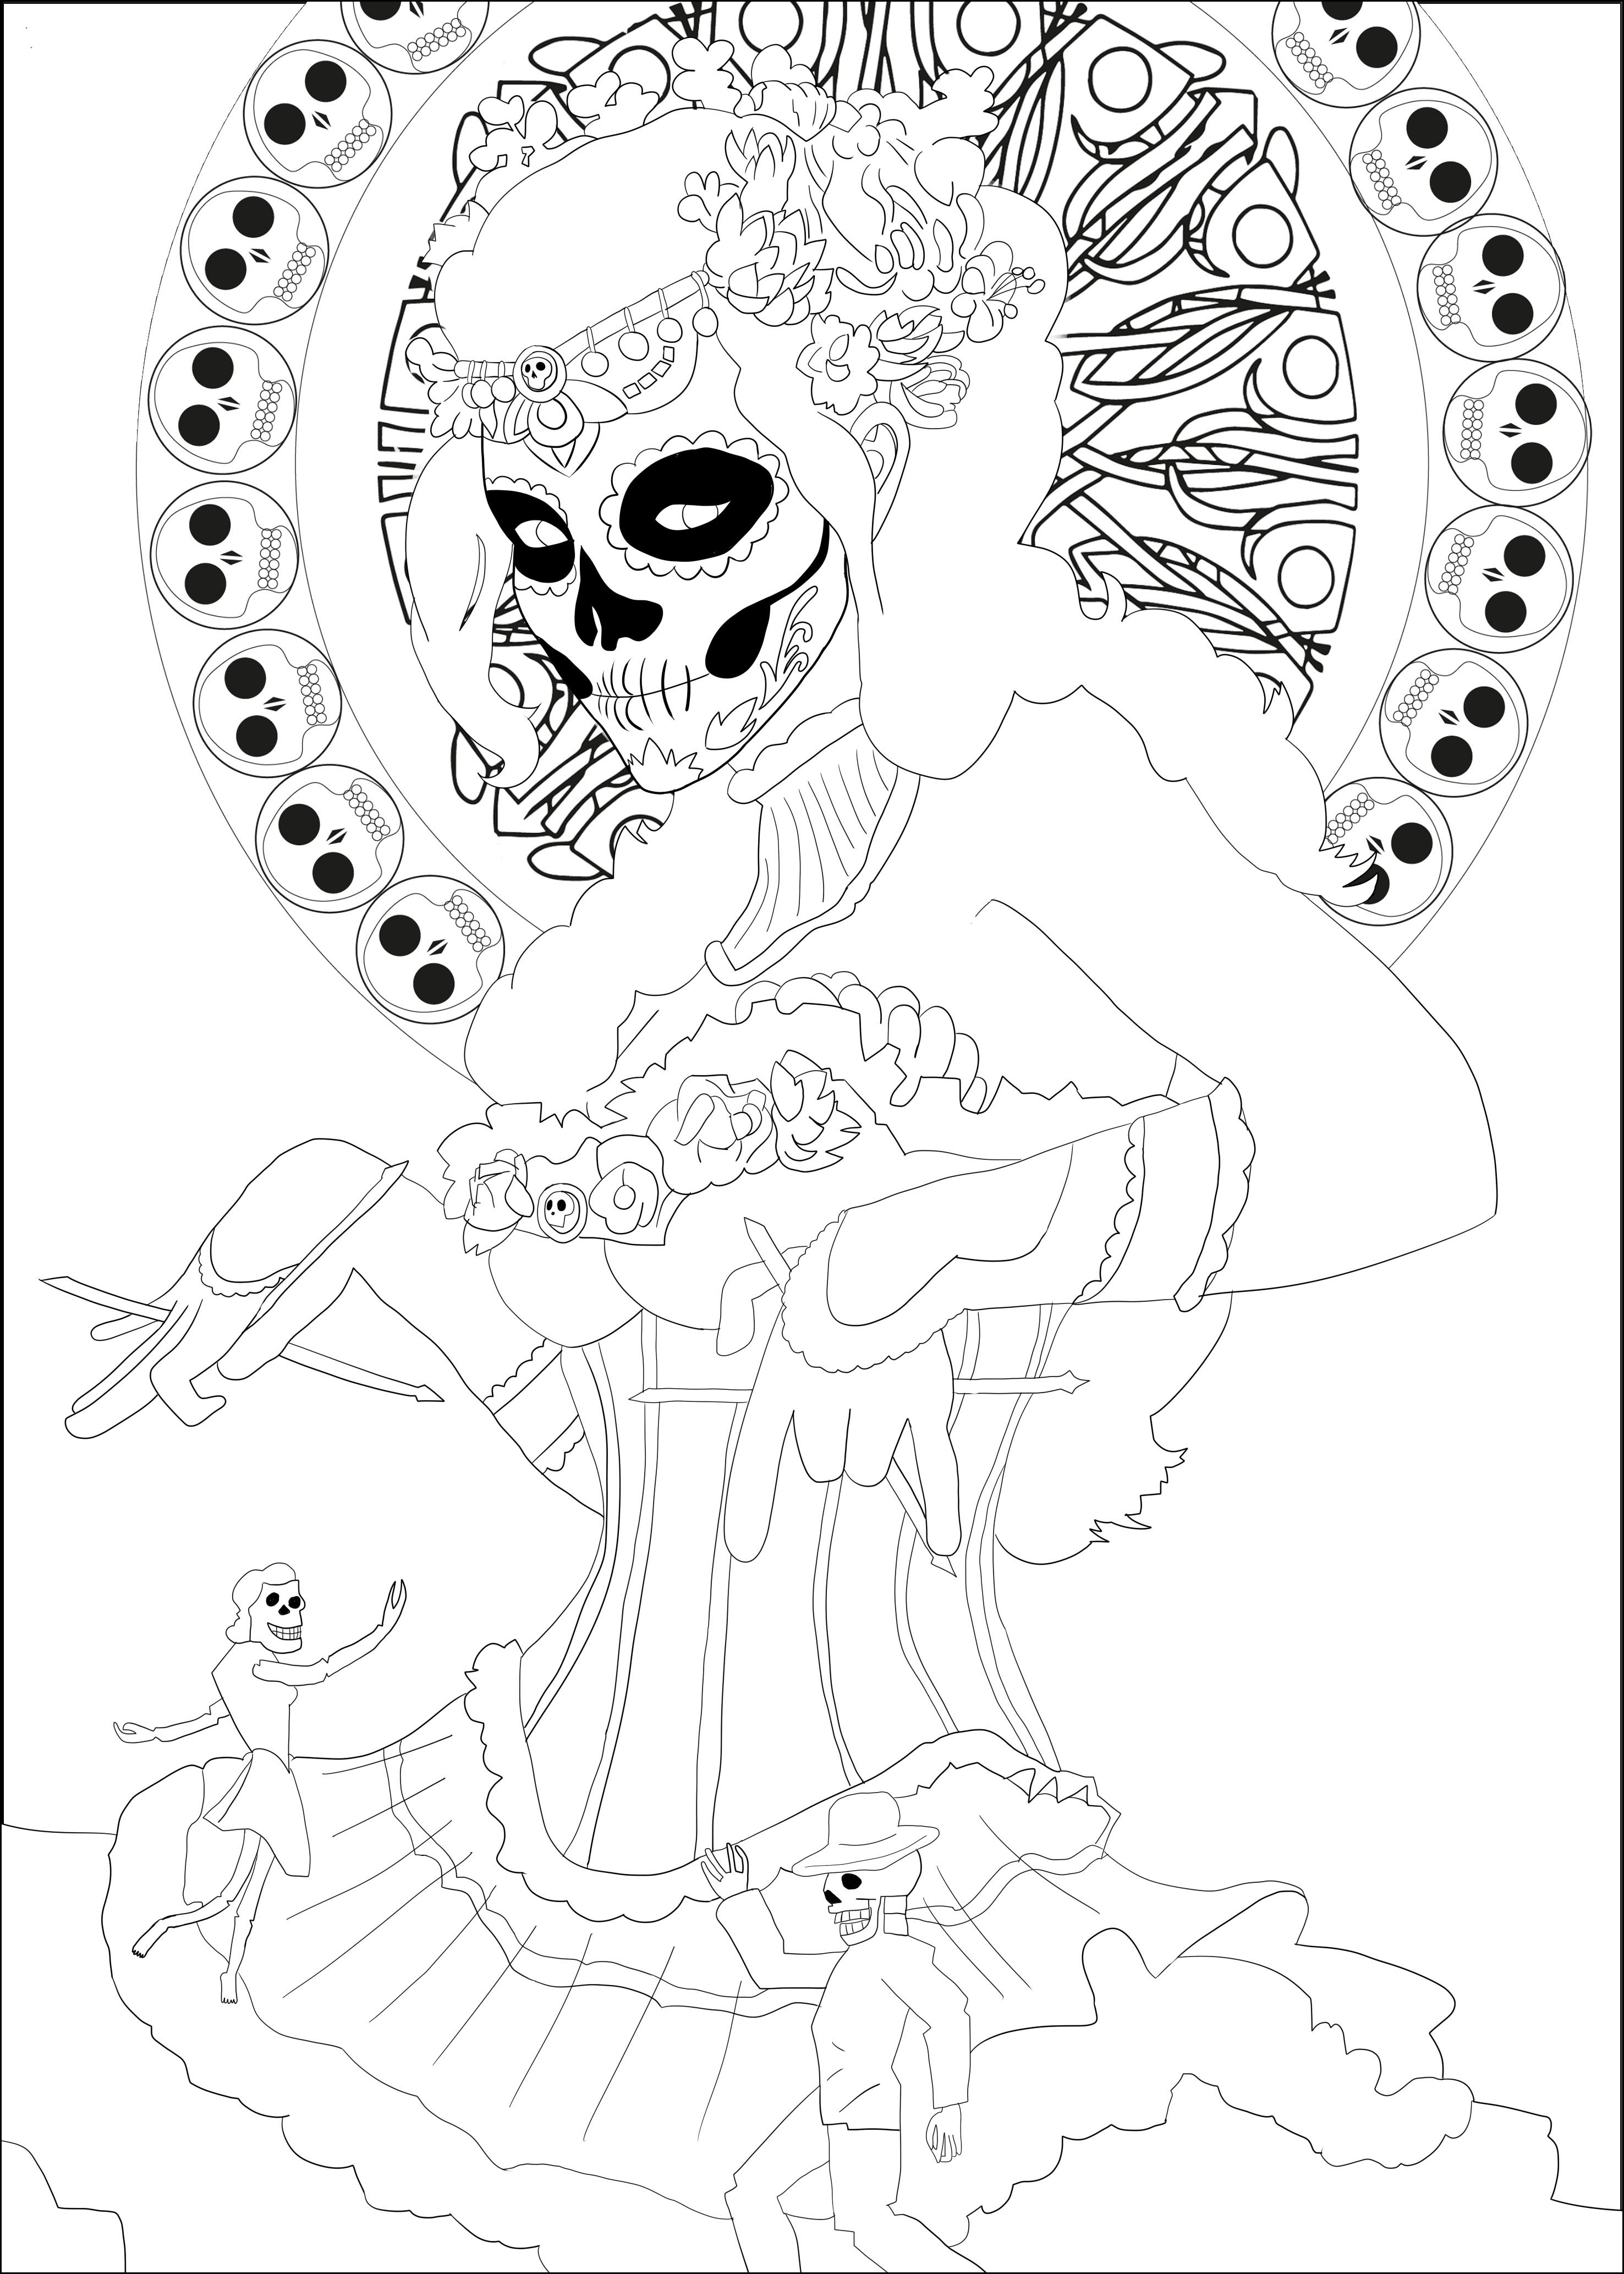 Coloring page inspired by the Mexican celebration 'Día de los Muertos'